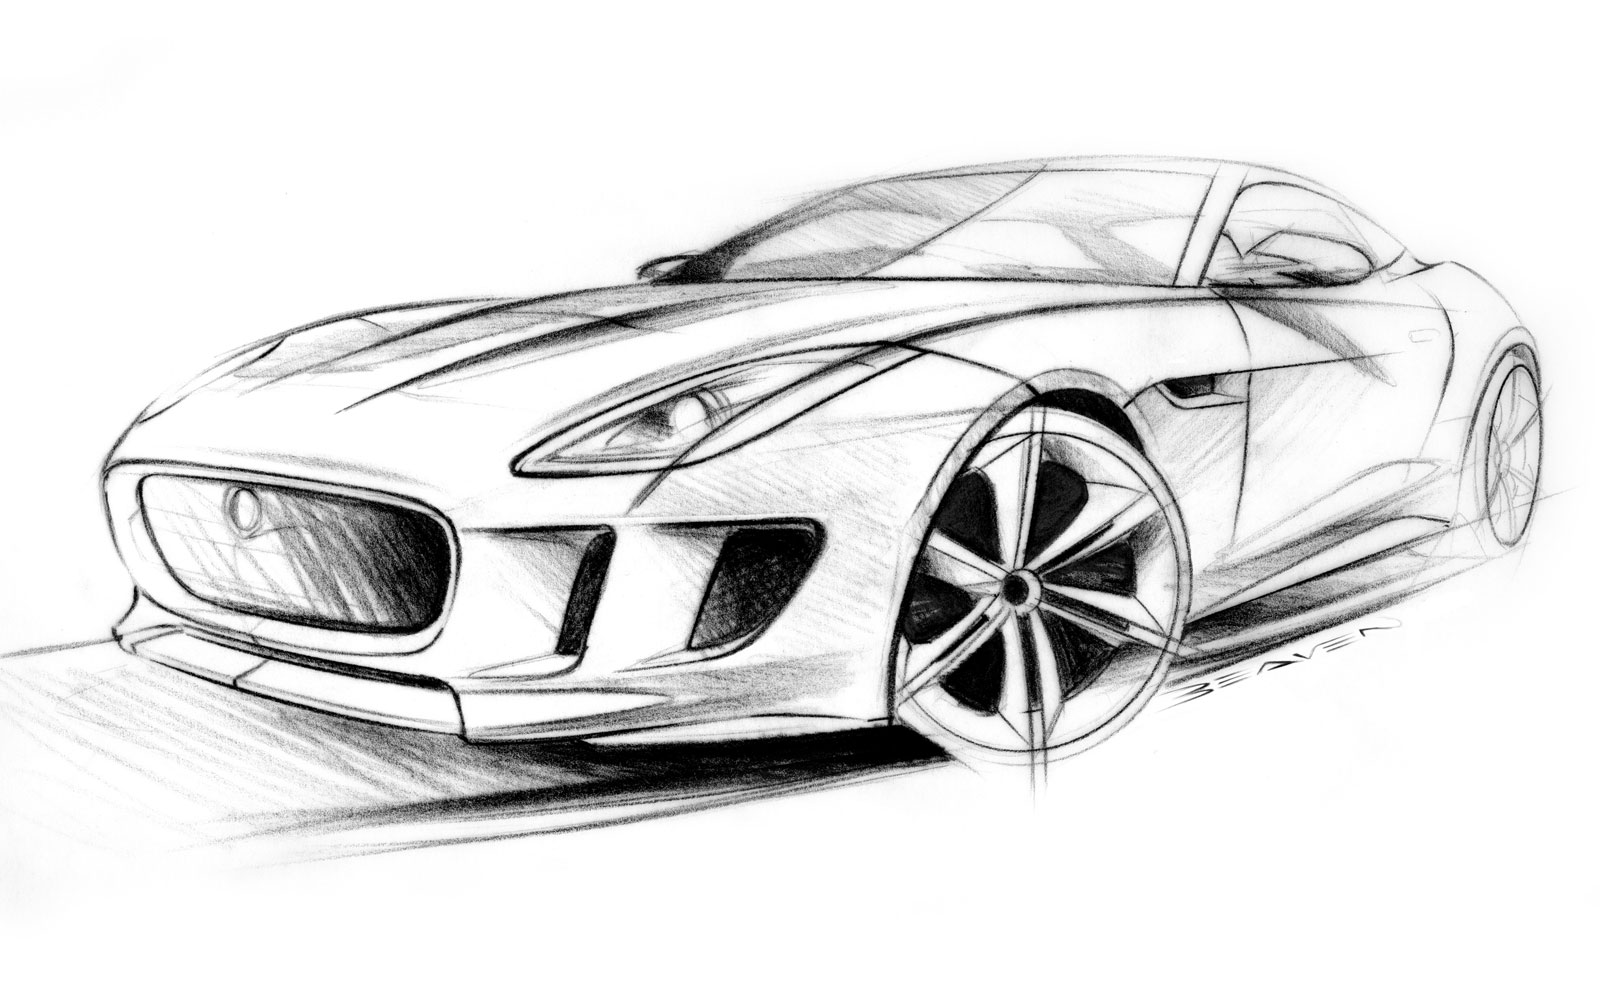 Jaguar C-X16 Concept Design Sketch